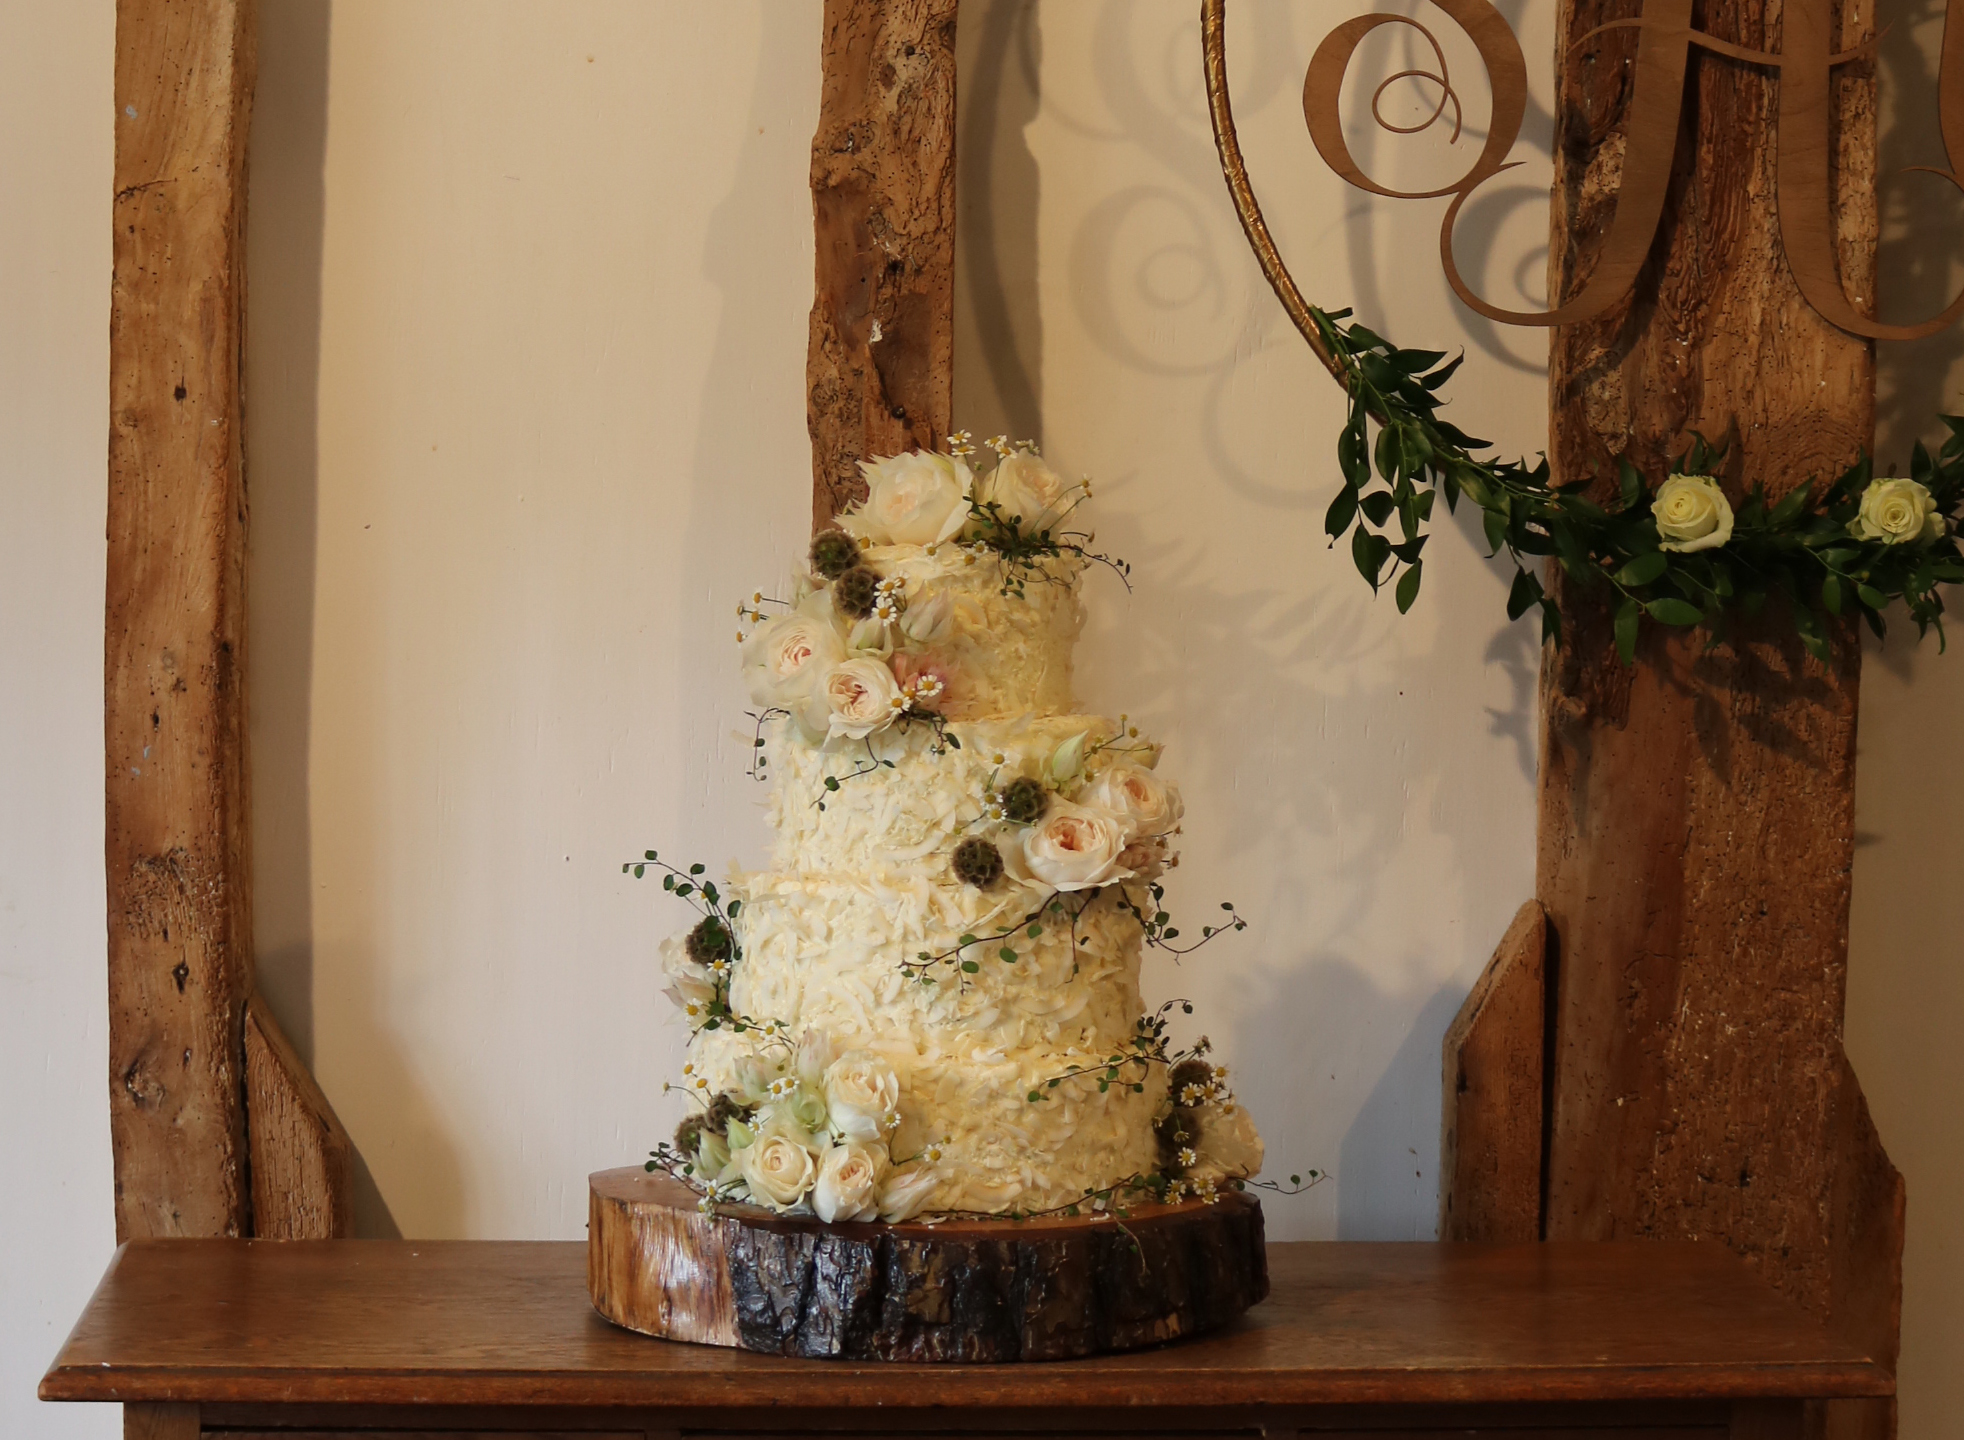 Coconut covered textured wedding cake with beautiful fresh flowers